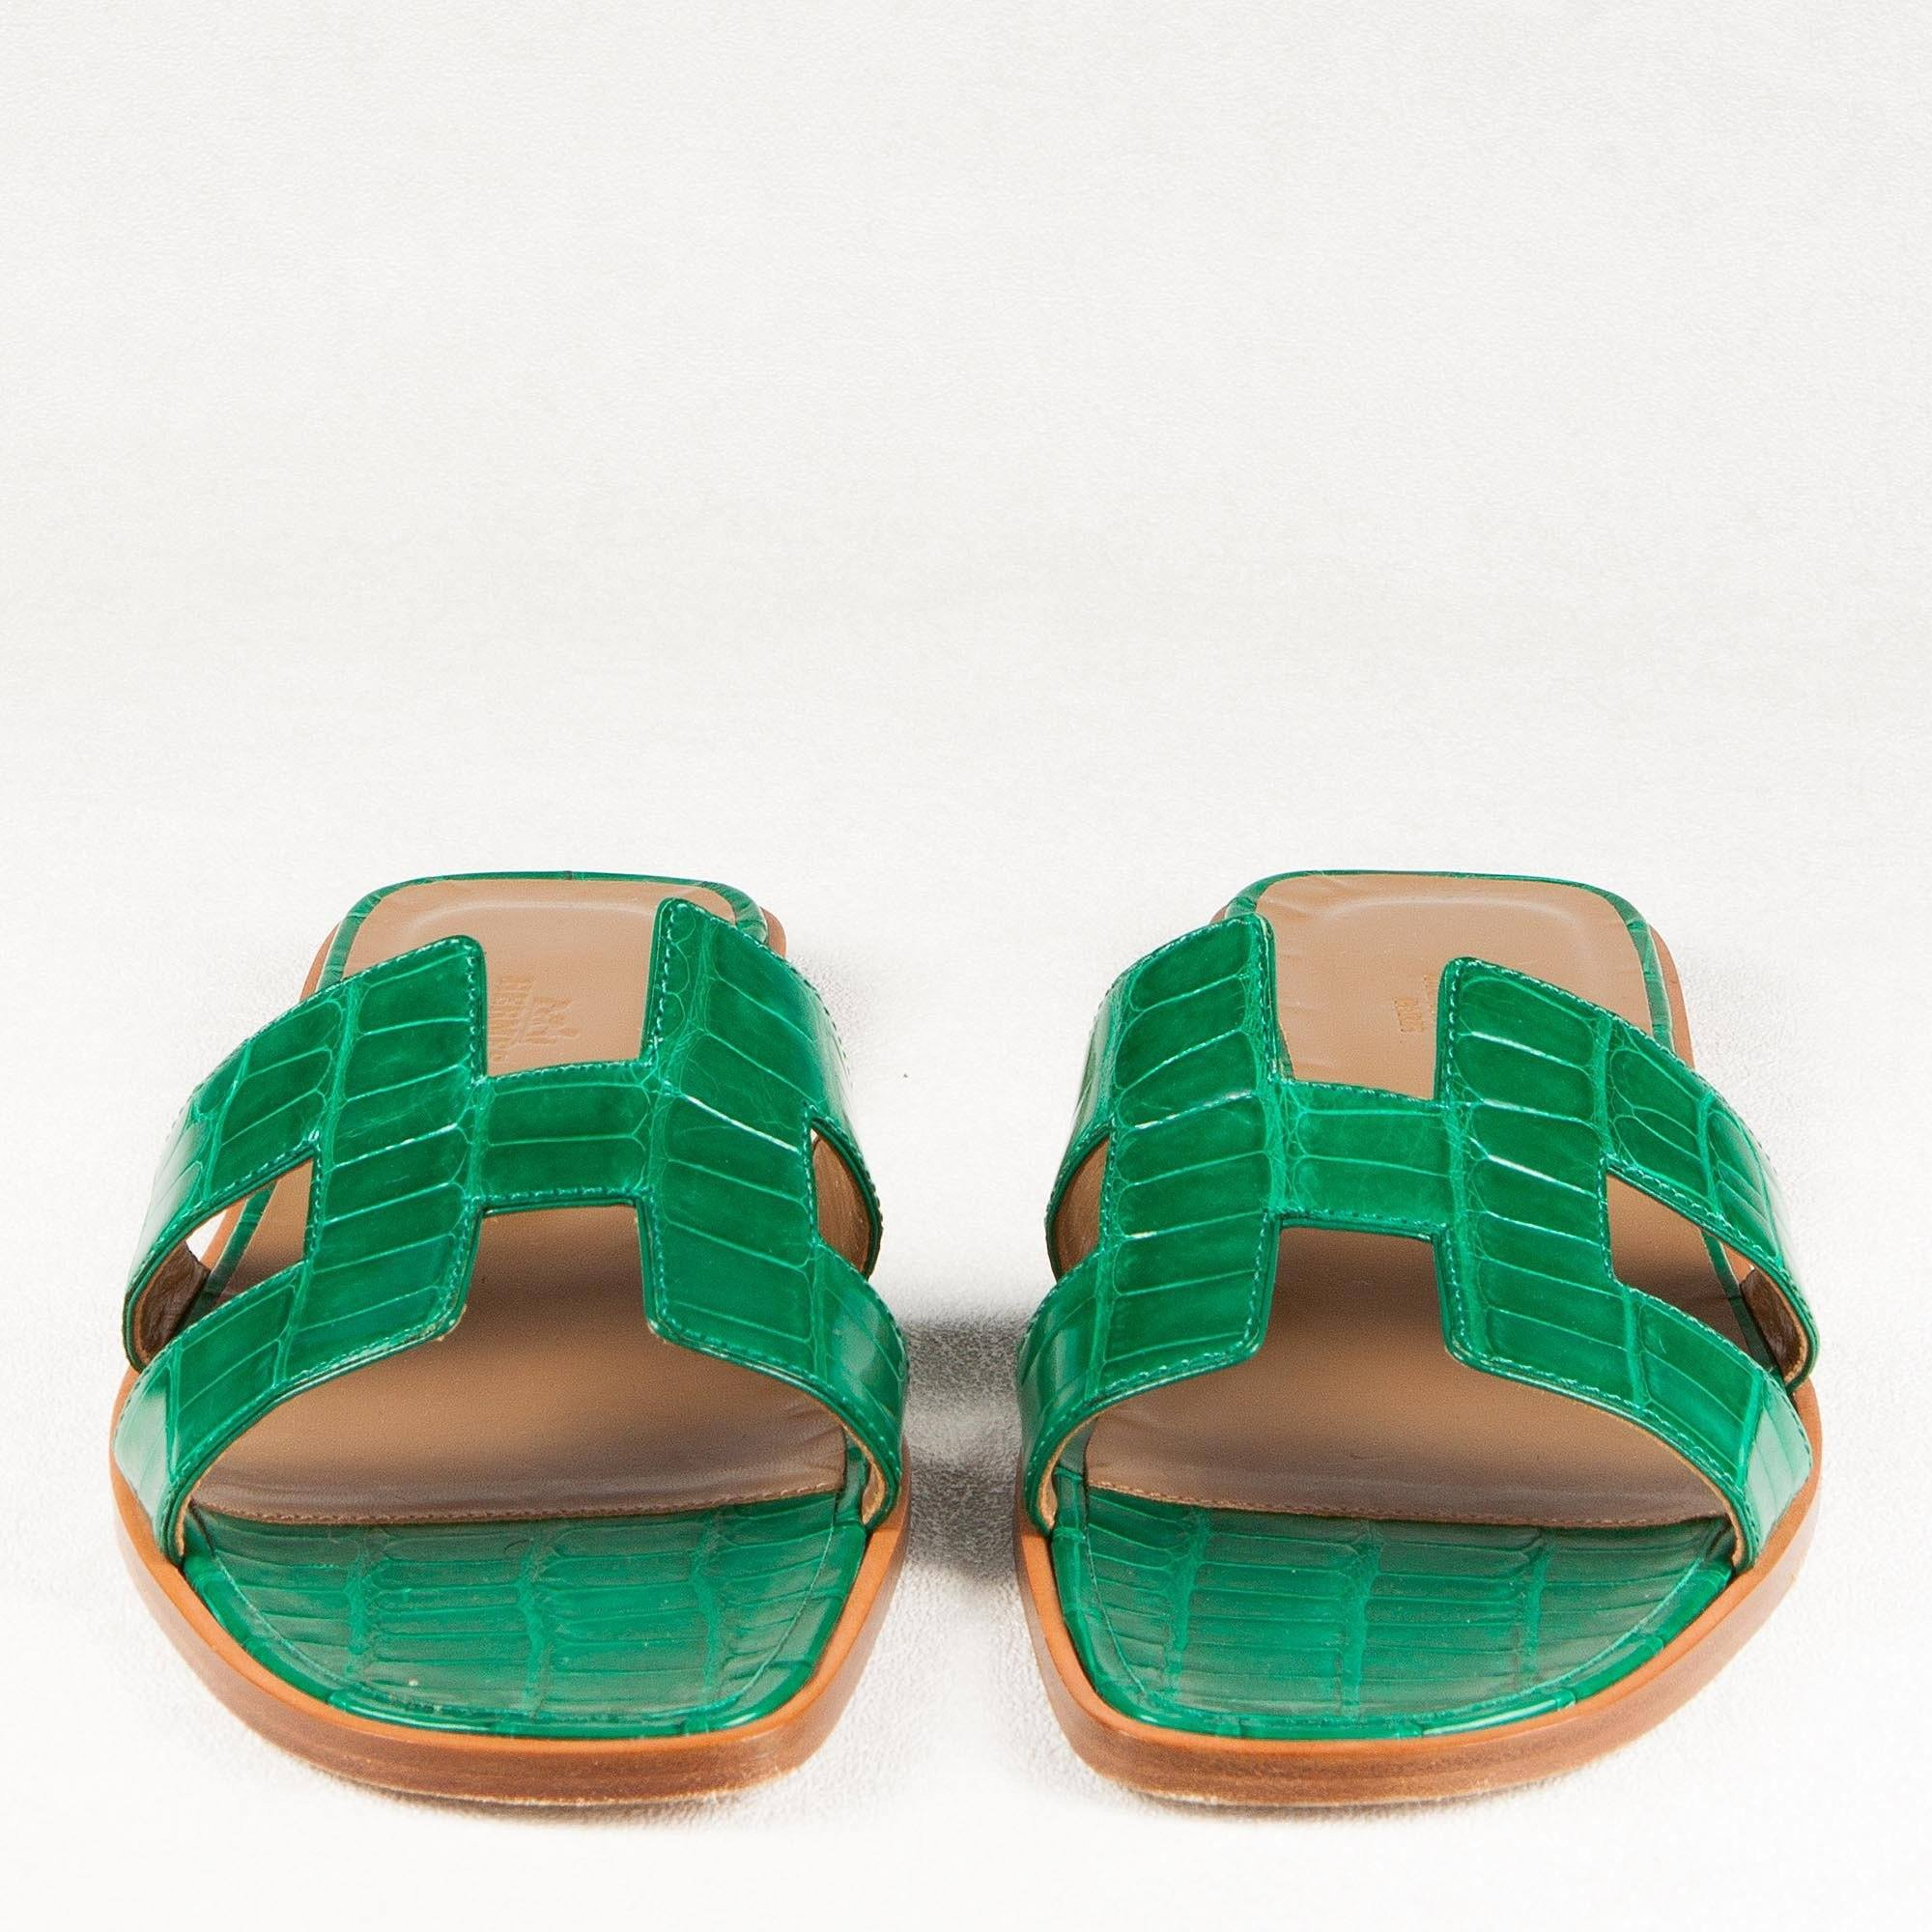 Hermes Crocodile Green Oran Sandals